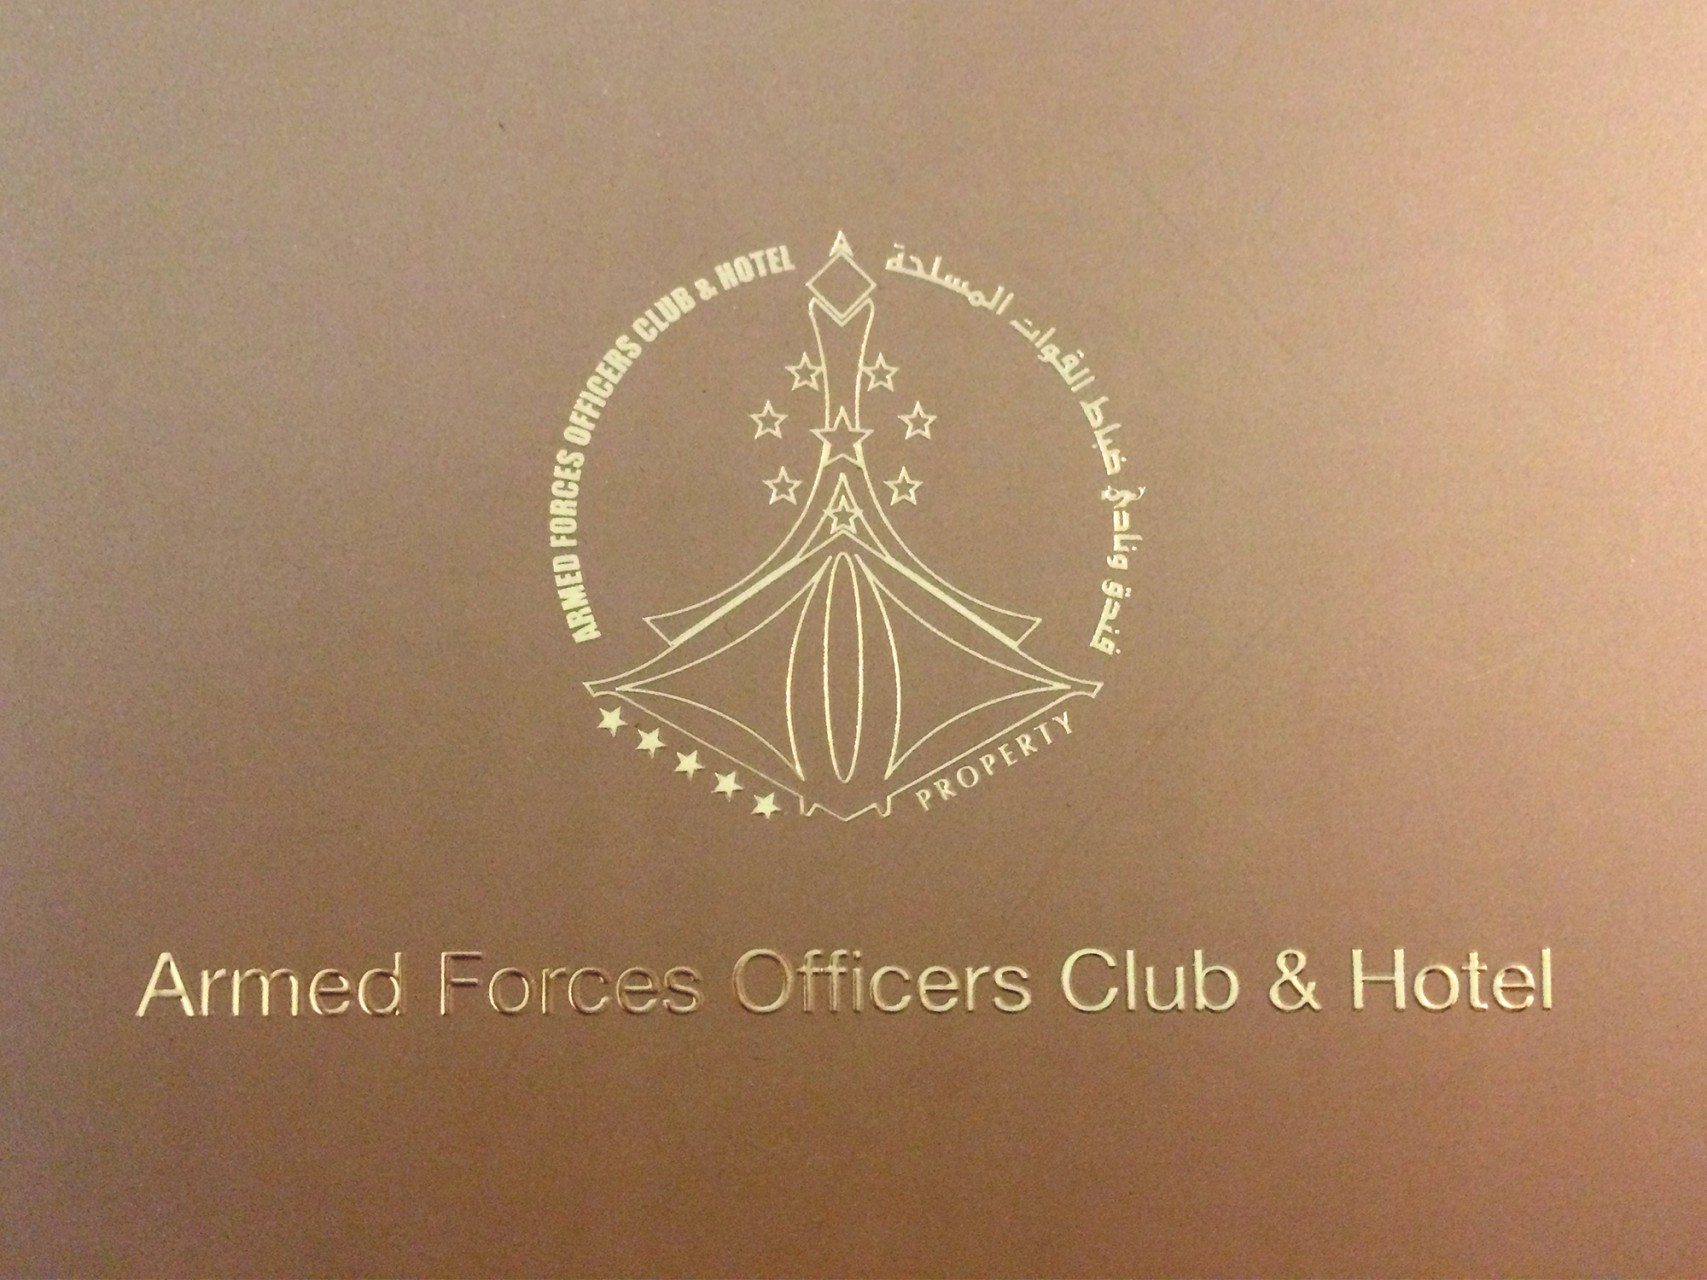 Golden. The Armed Forces Officers Club & Hotel – eine feste Institution für erholsame, gesellschaftliche und kulturelle Aktivitäten in der emiratischen Hauptstadt.